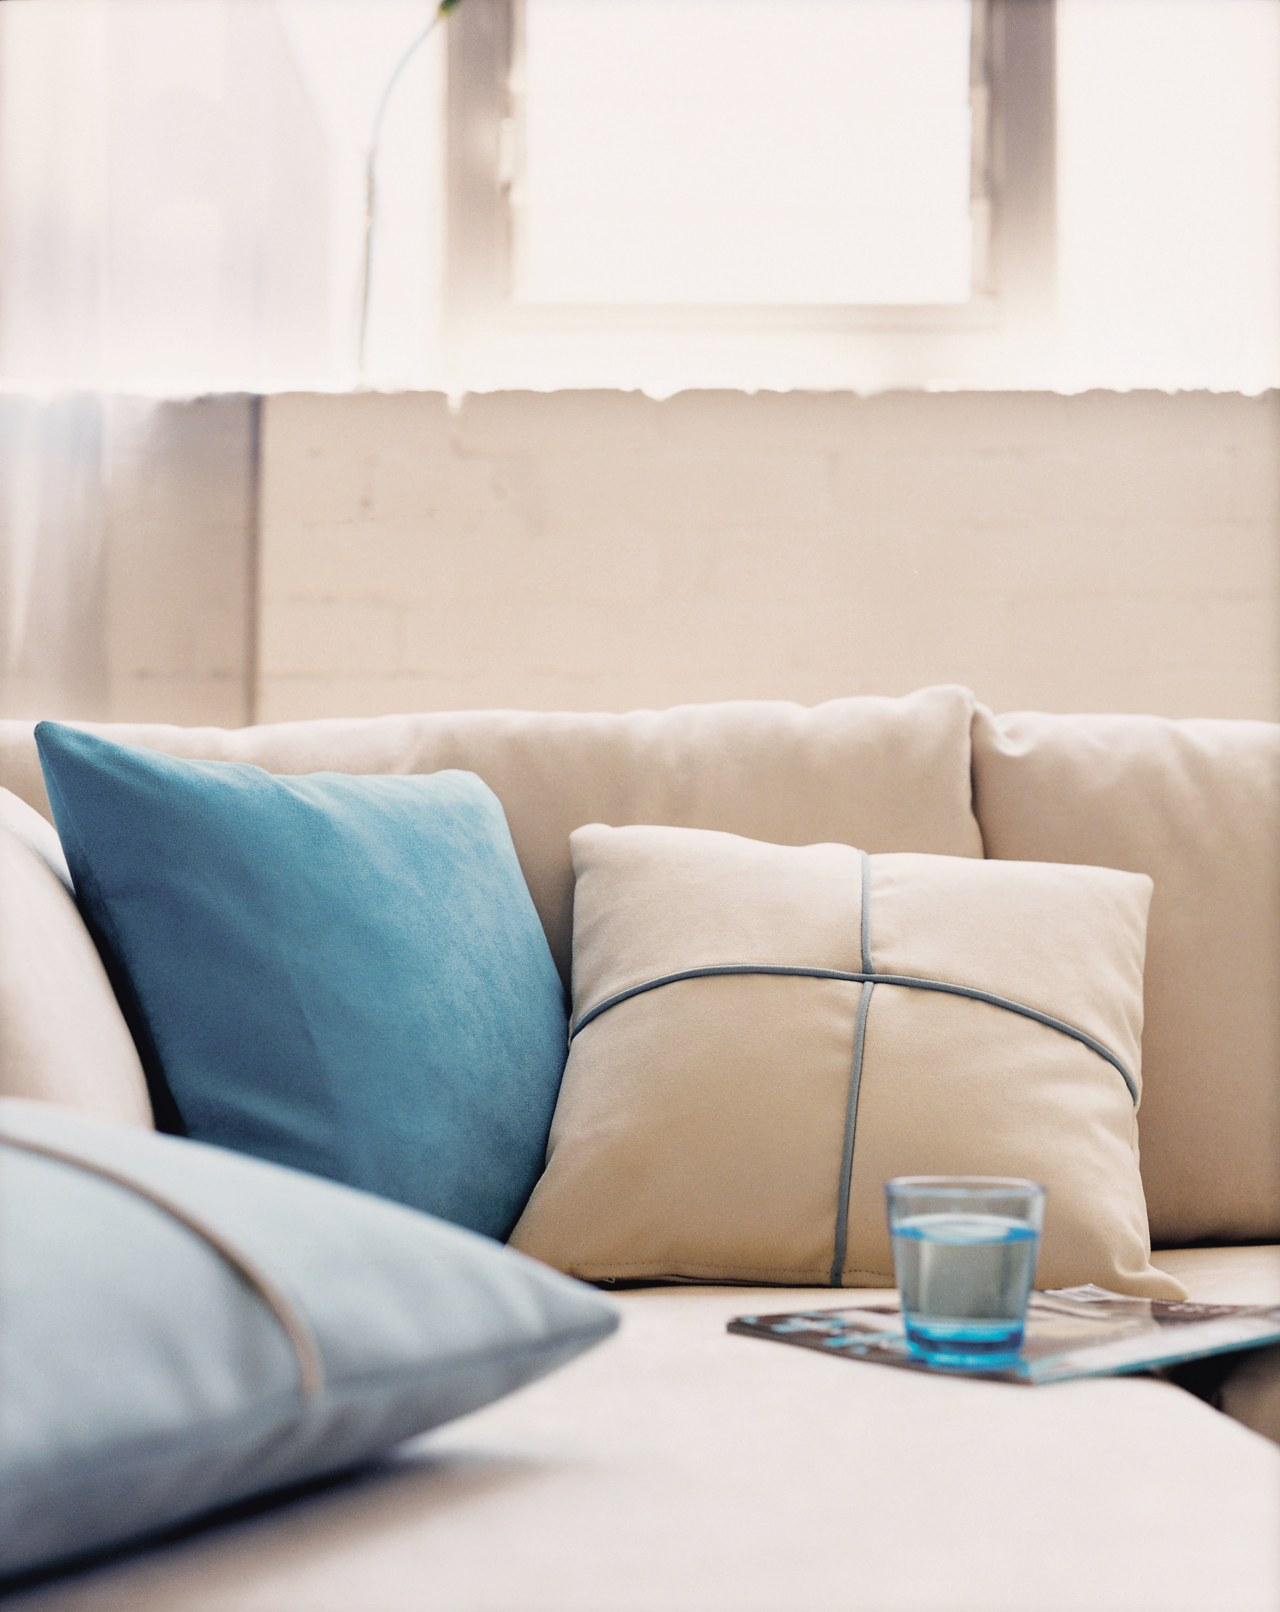 In modern commercial interiors, an eye-catching furnishing scheme bed sheet, bedding, couch, cushion, duvet cover, furniture, interior design, linens, living room, pillow, product design, room, textile, white